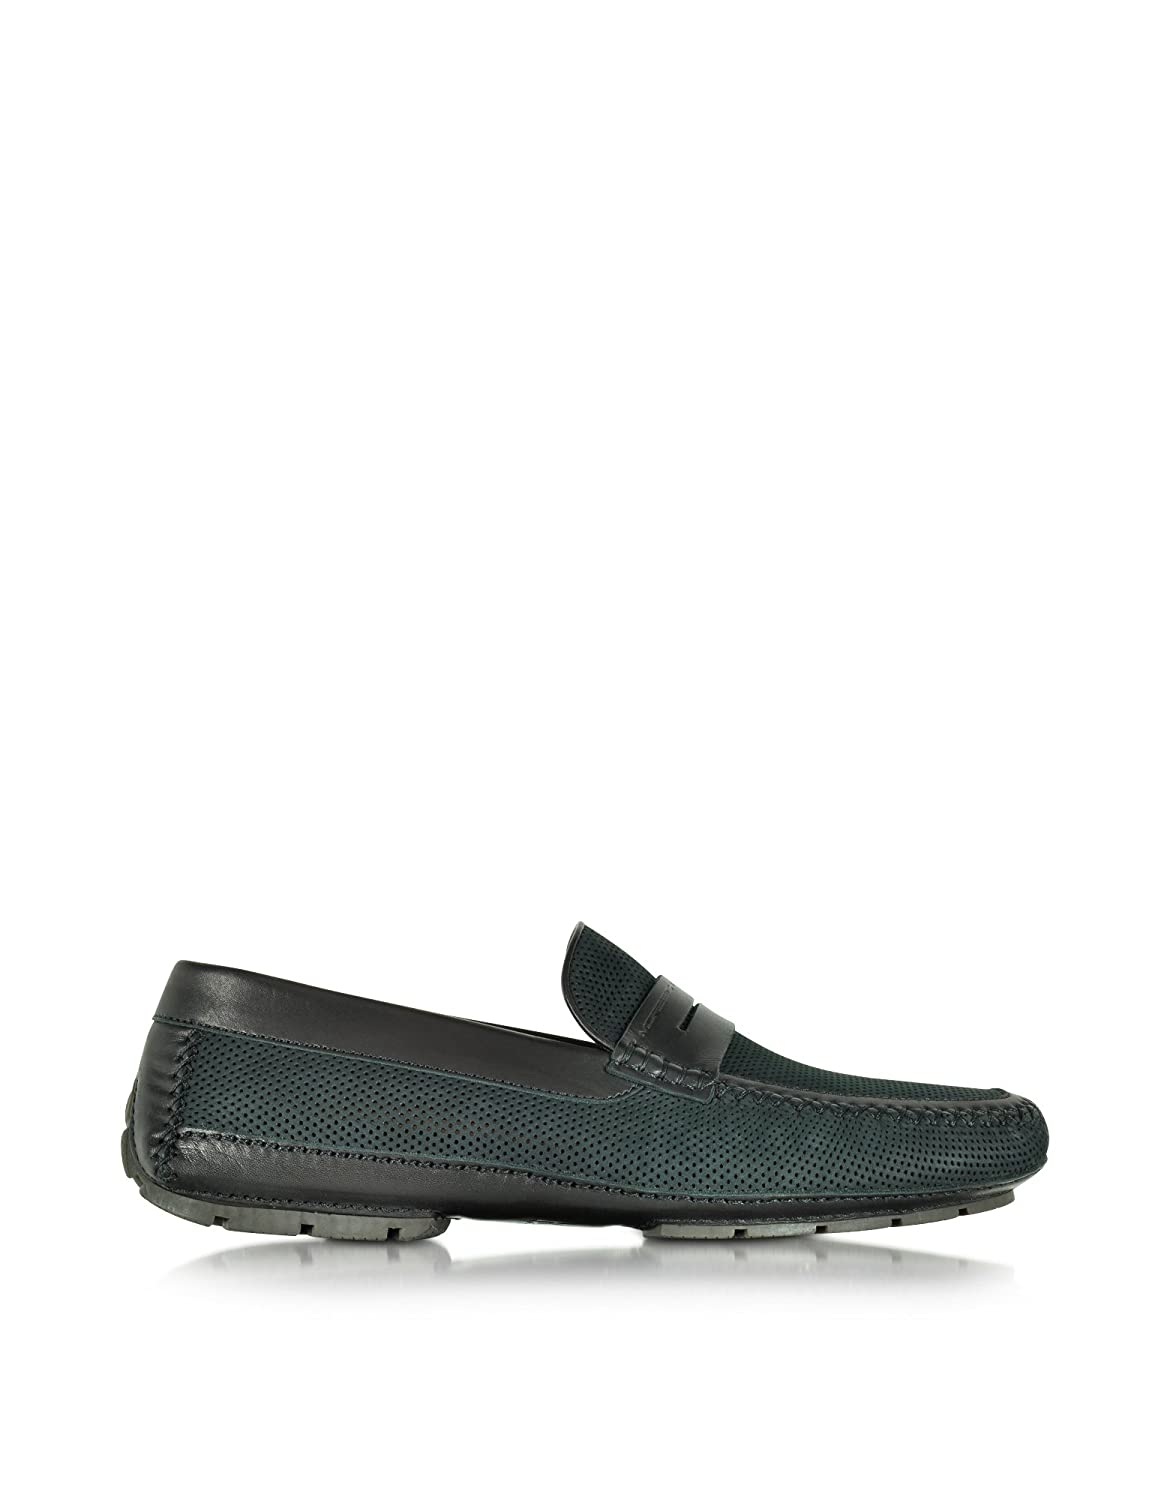 MORESCHI MEN'S 41599SHBAHAMASBLACK BLACK LEATHER LOAFERS